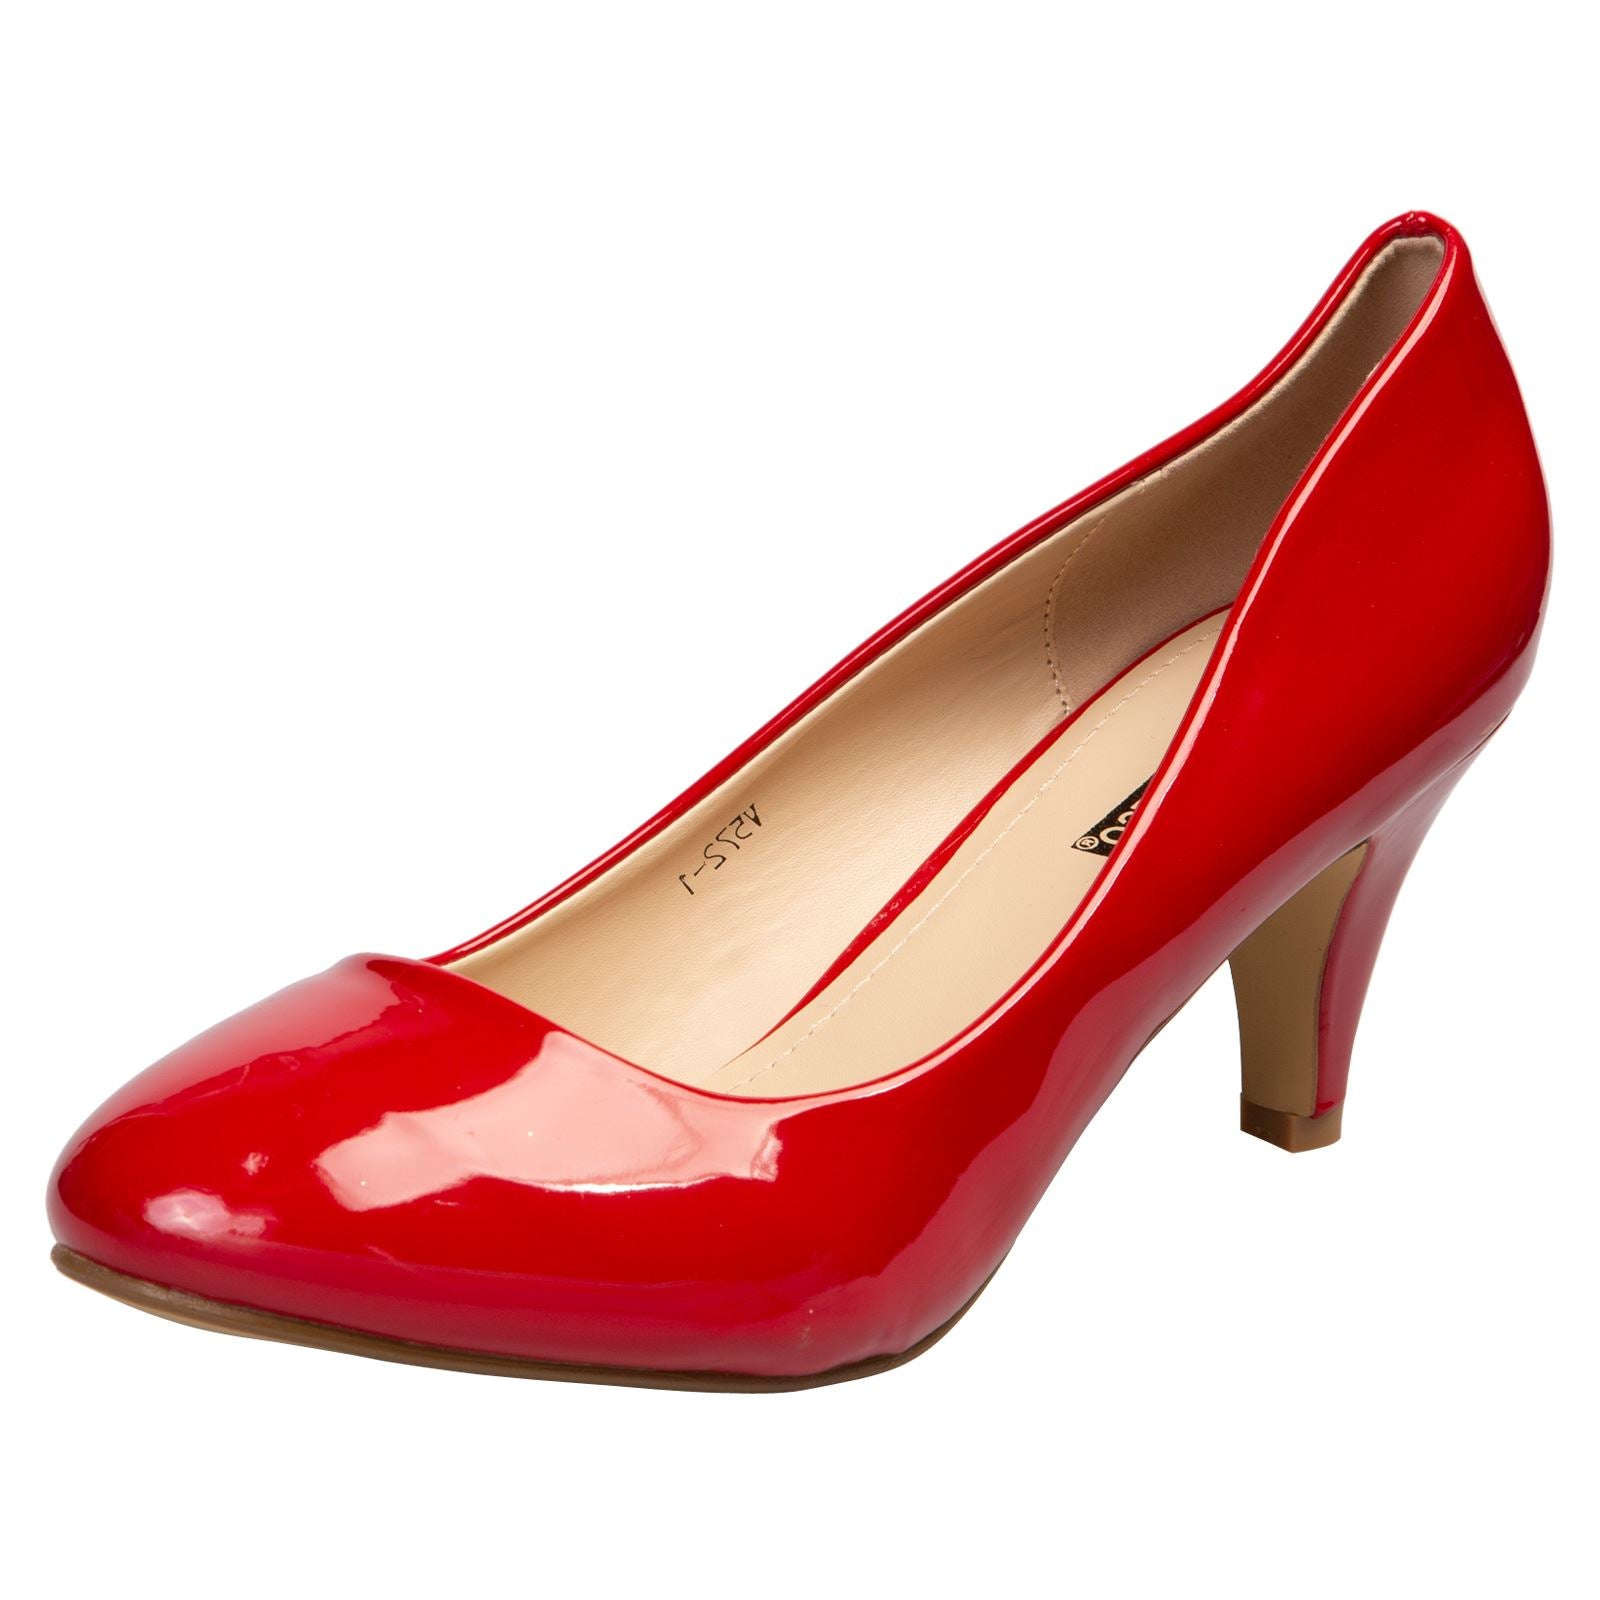 Karlee Low Mid Kitten Heels in Red Patent - Feet First Fashion